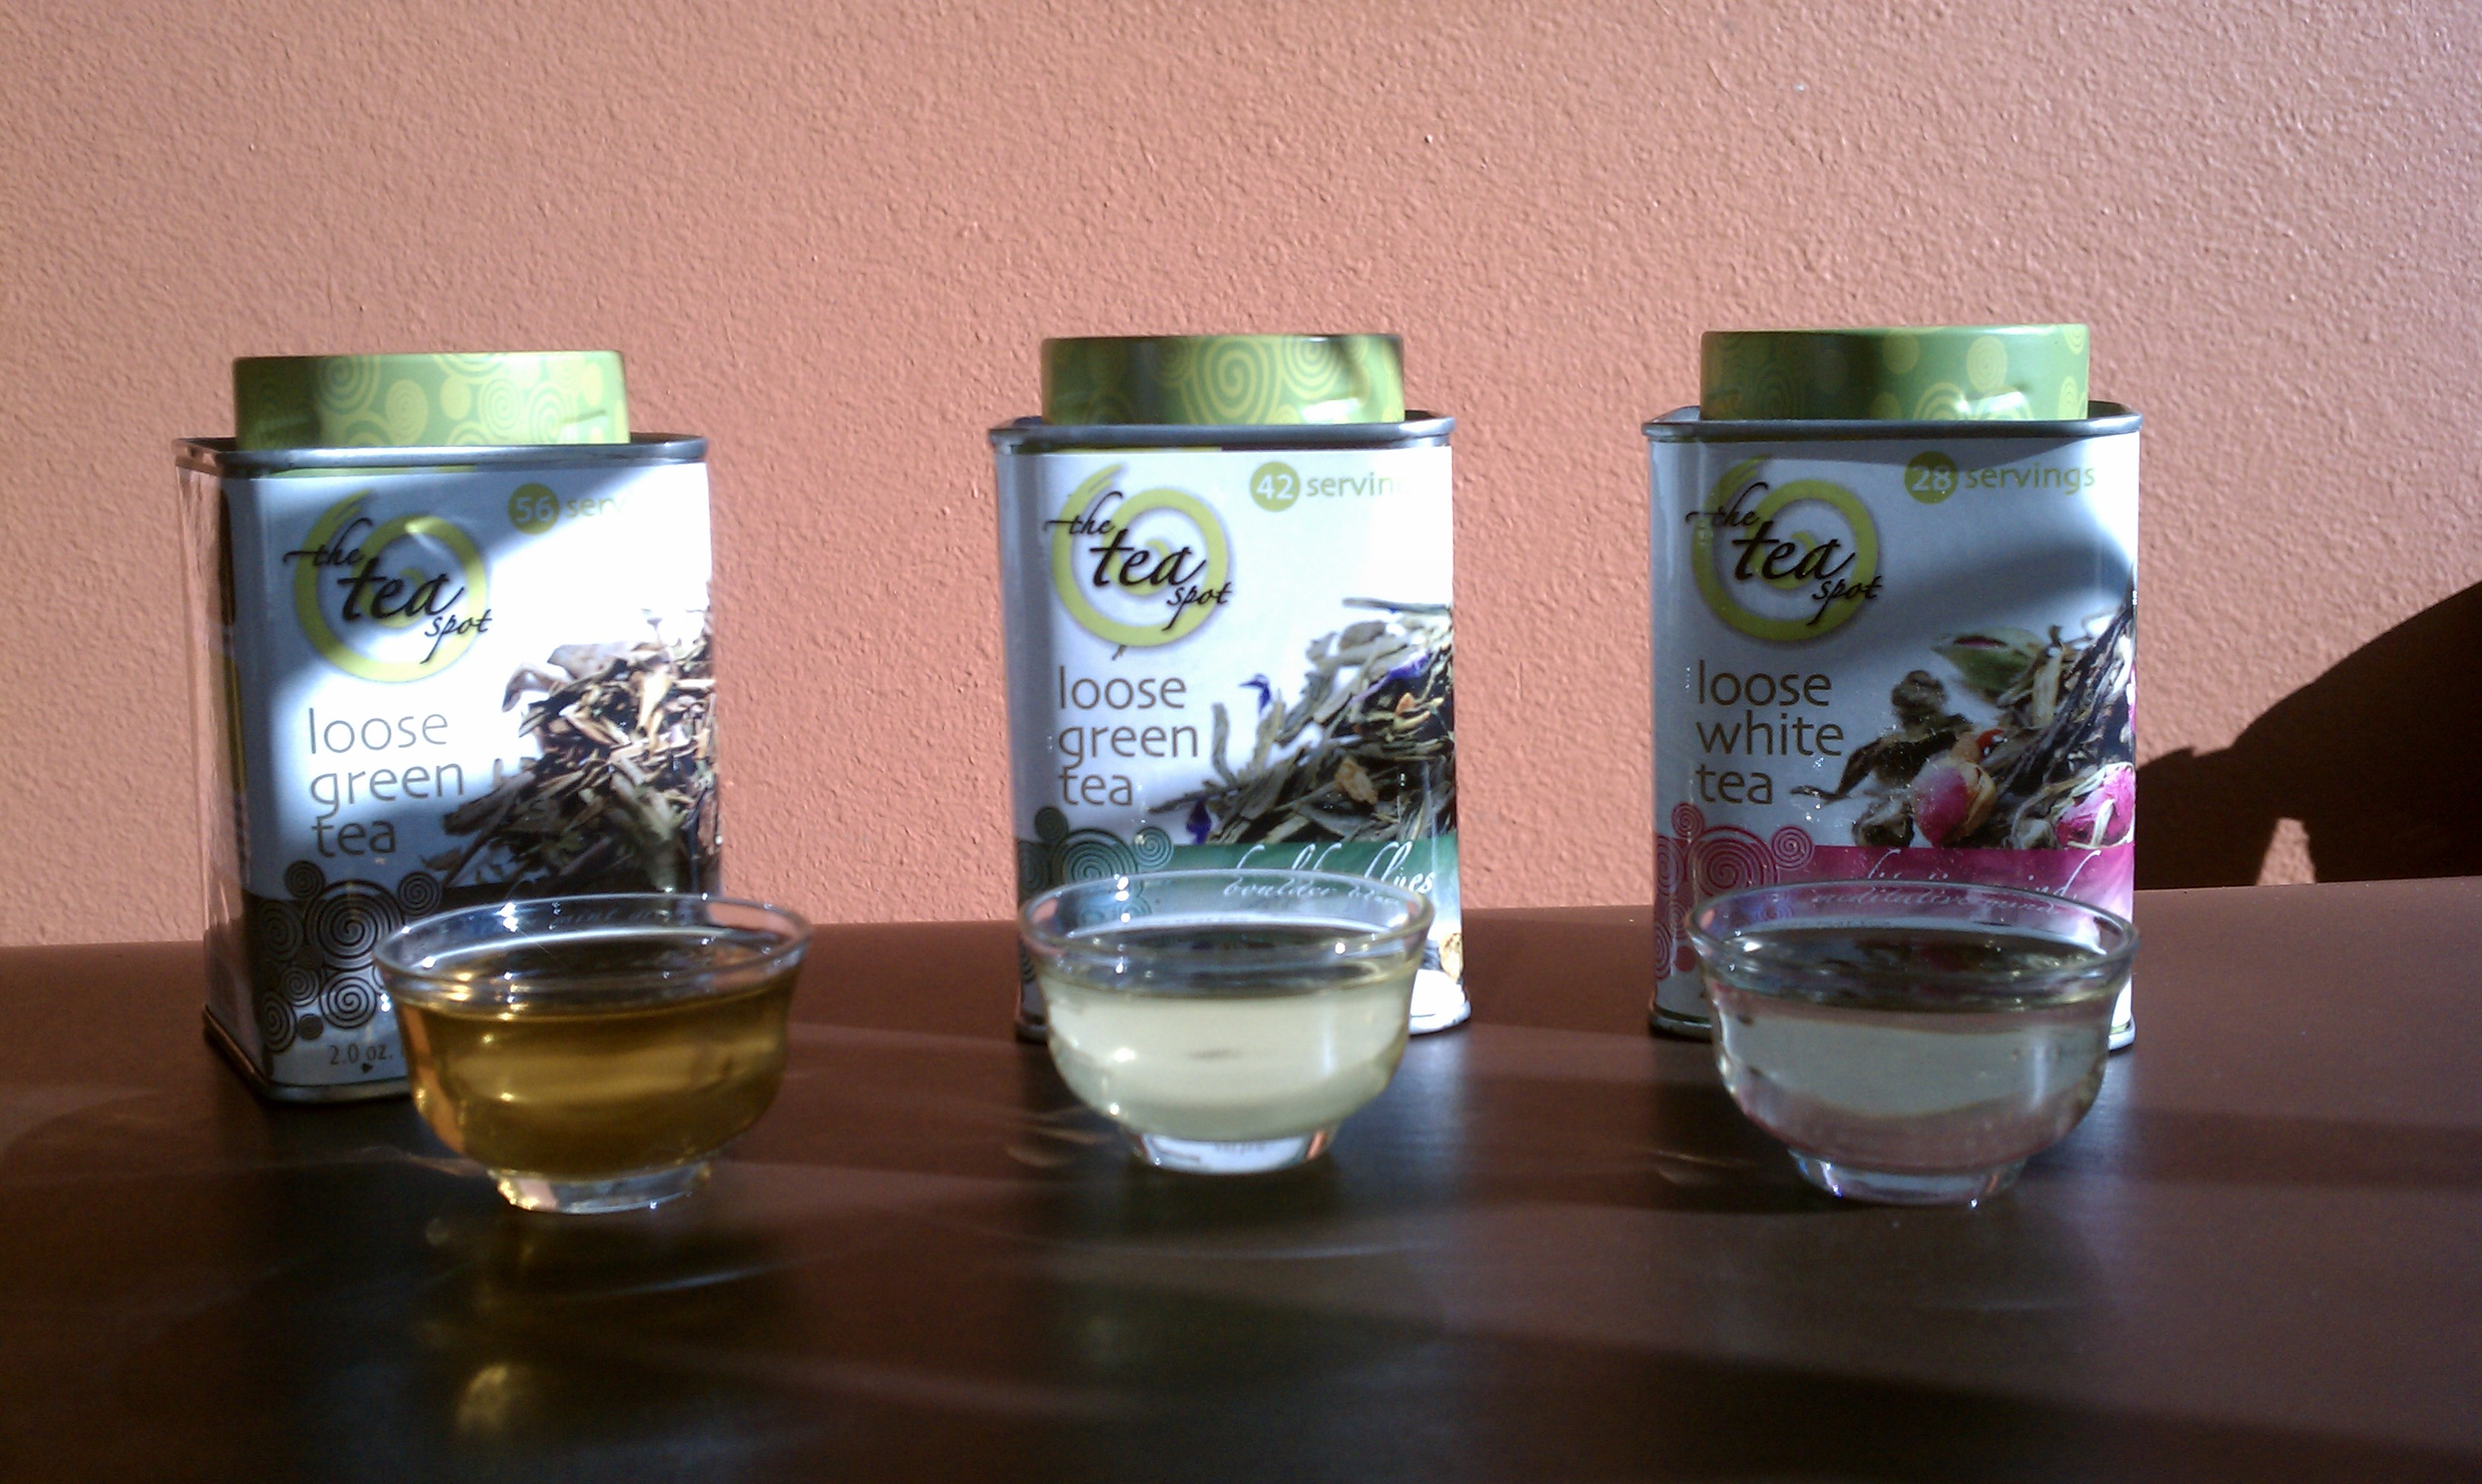 The Secret of the Skinny loose green tea collection